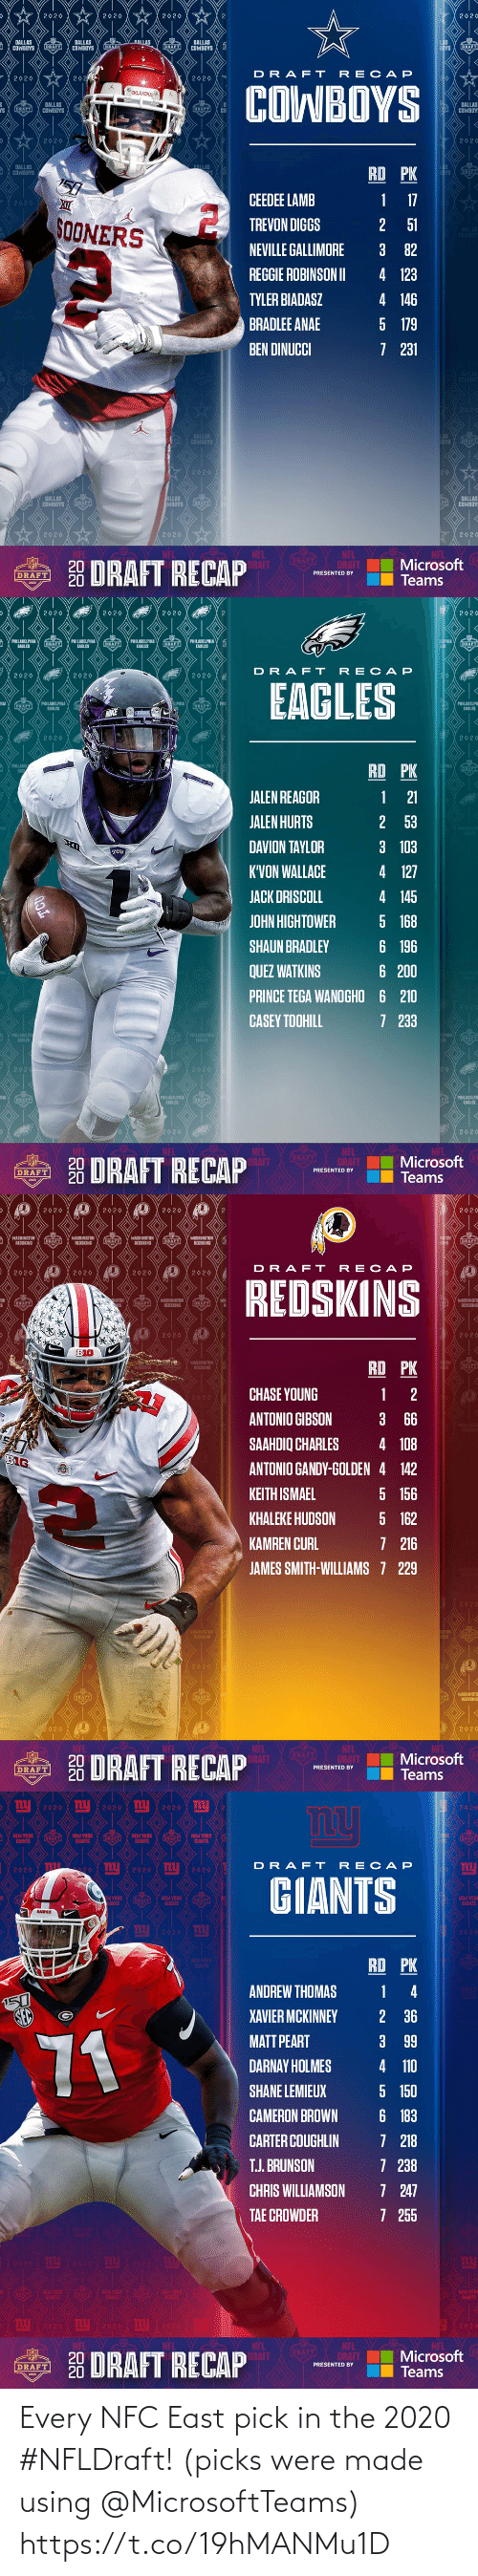 east: Every NFC East pick in the 2020 #NFLDraft!  (picks were made using @MicrosoftTeams) https://t.co/19hMANMu1D